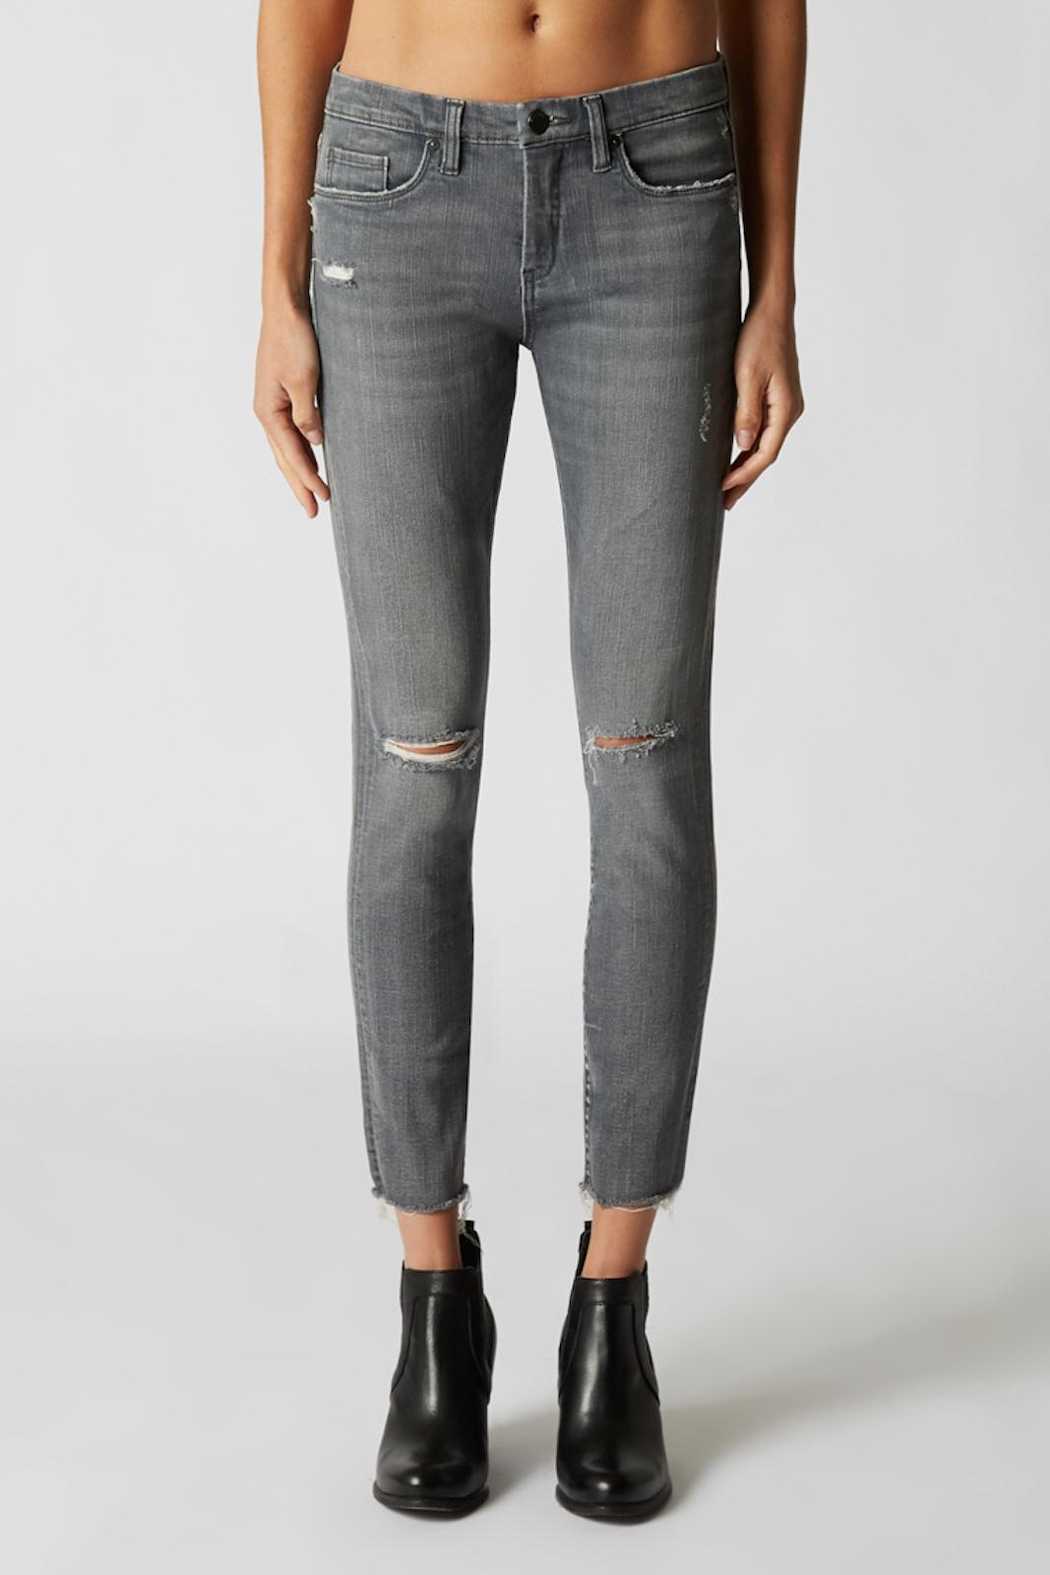 BlankNYC Tequila Royale Jeans - Front Full Image